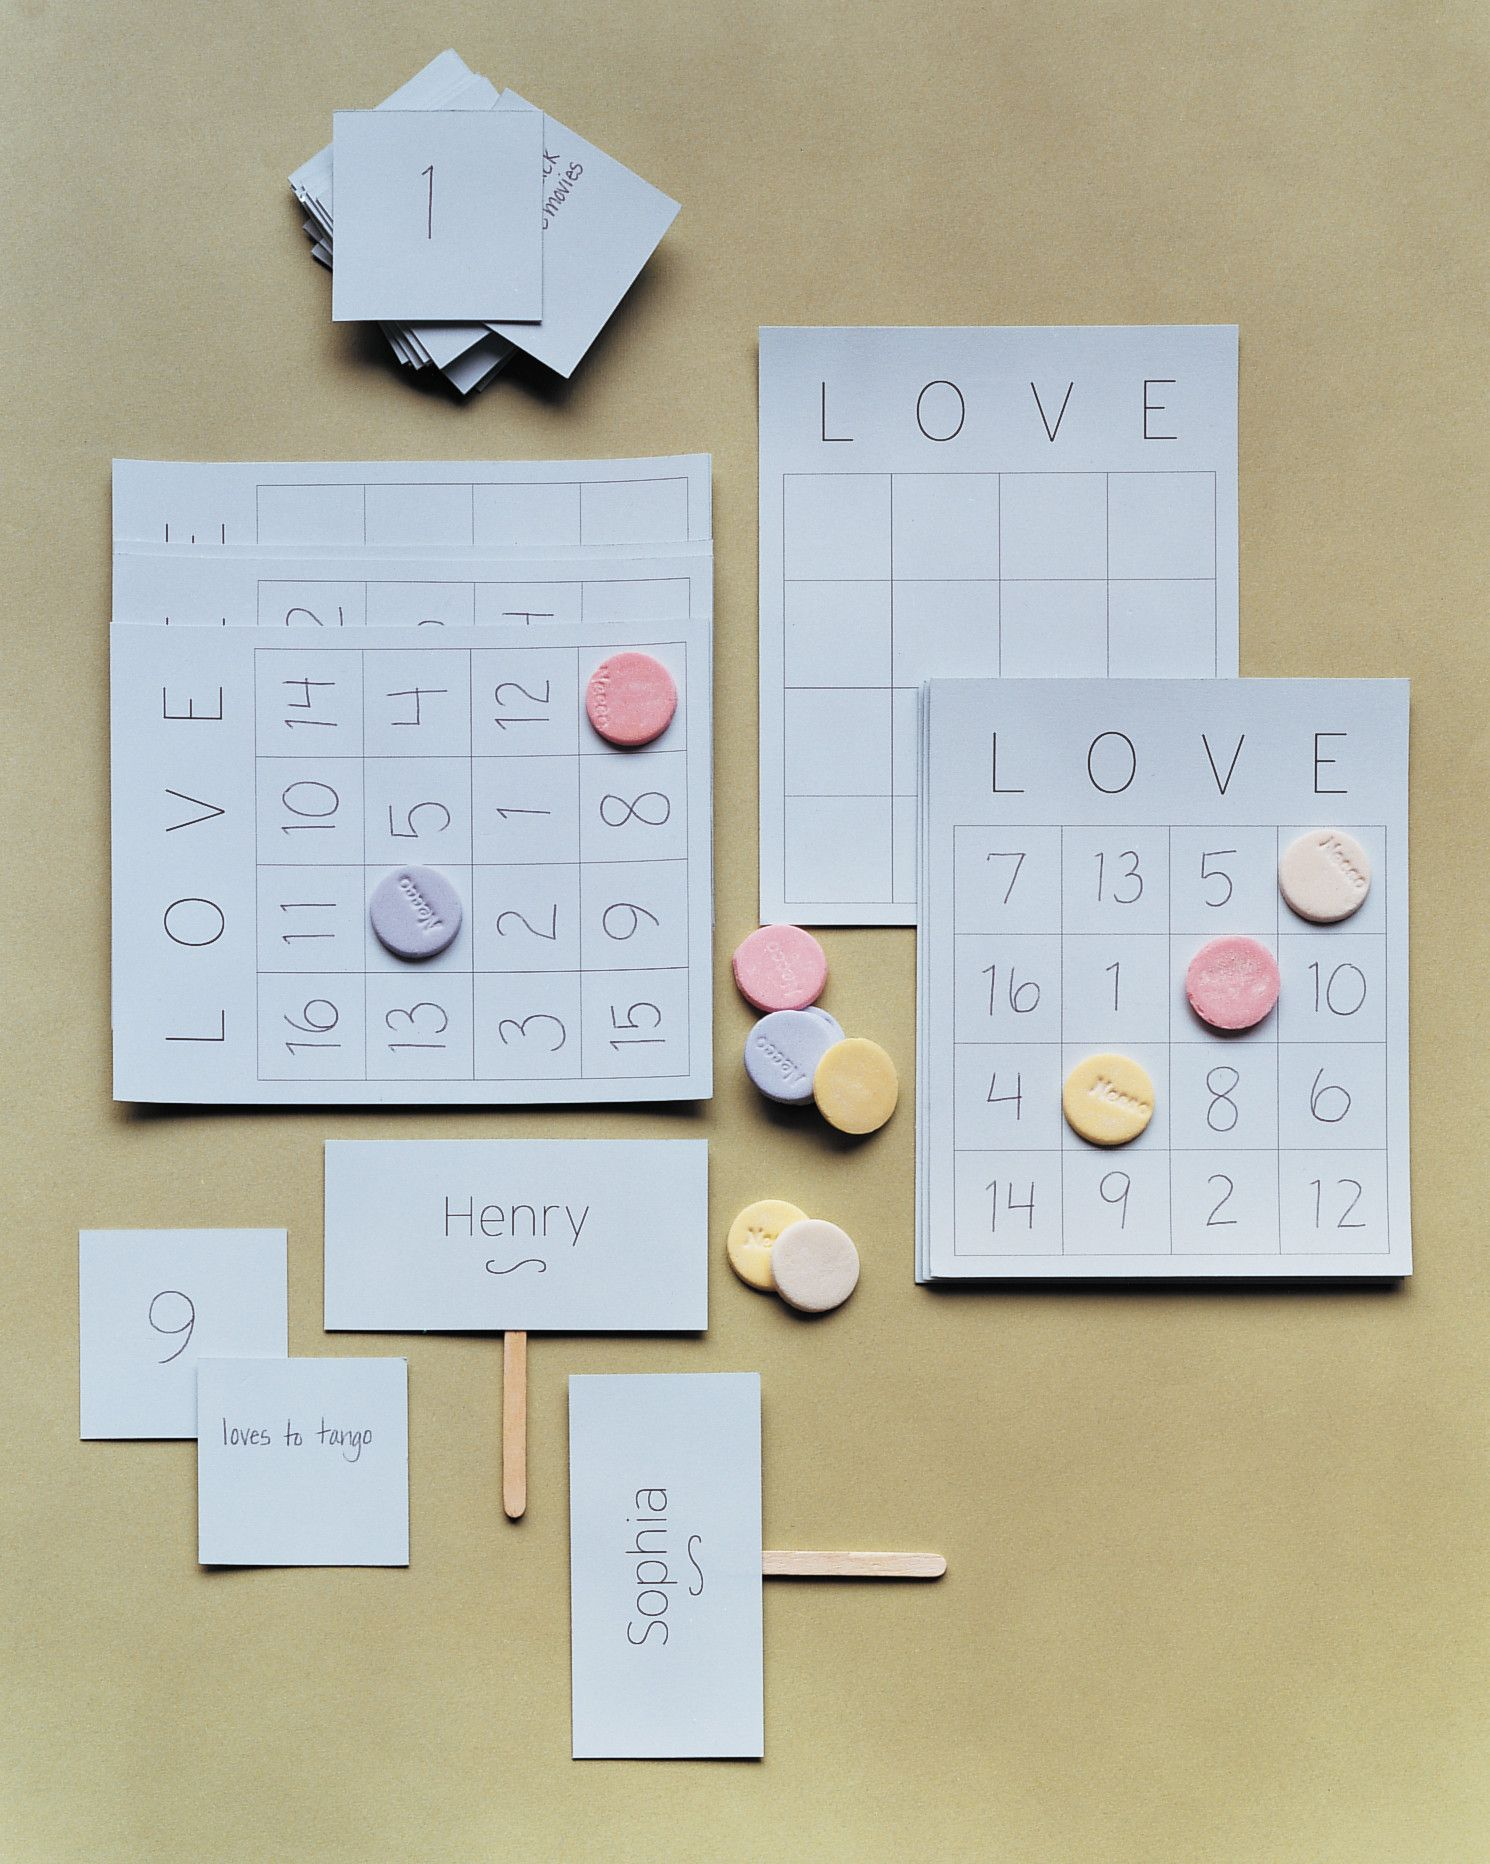 c72ca21831b5 Learn more about the bride and the groom by playing a round (or two) of our bridal  shower love bingo. Your maid of honor will read out statements about the ...